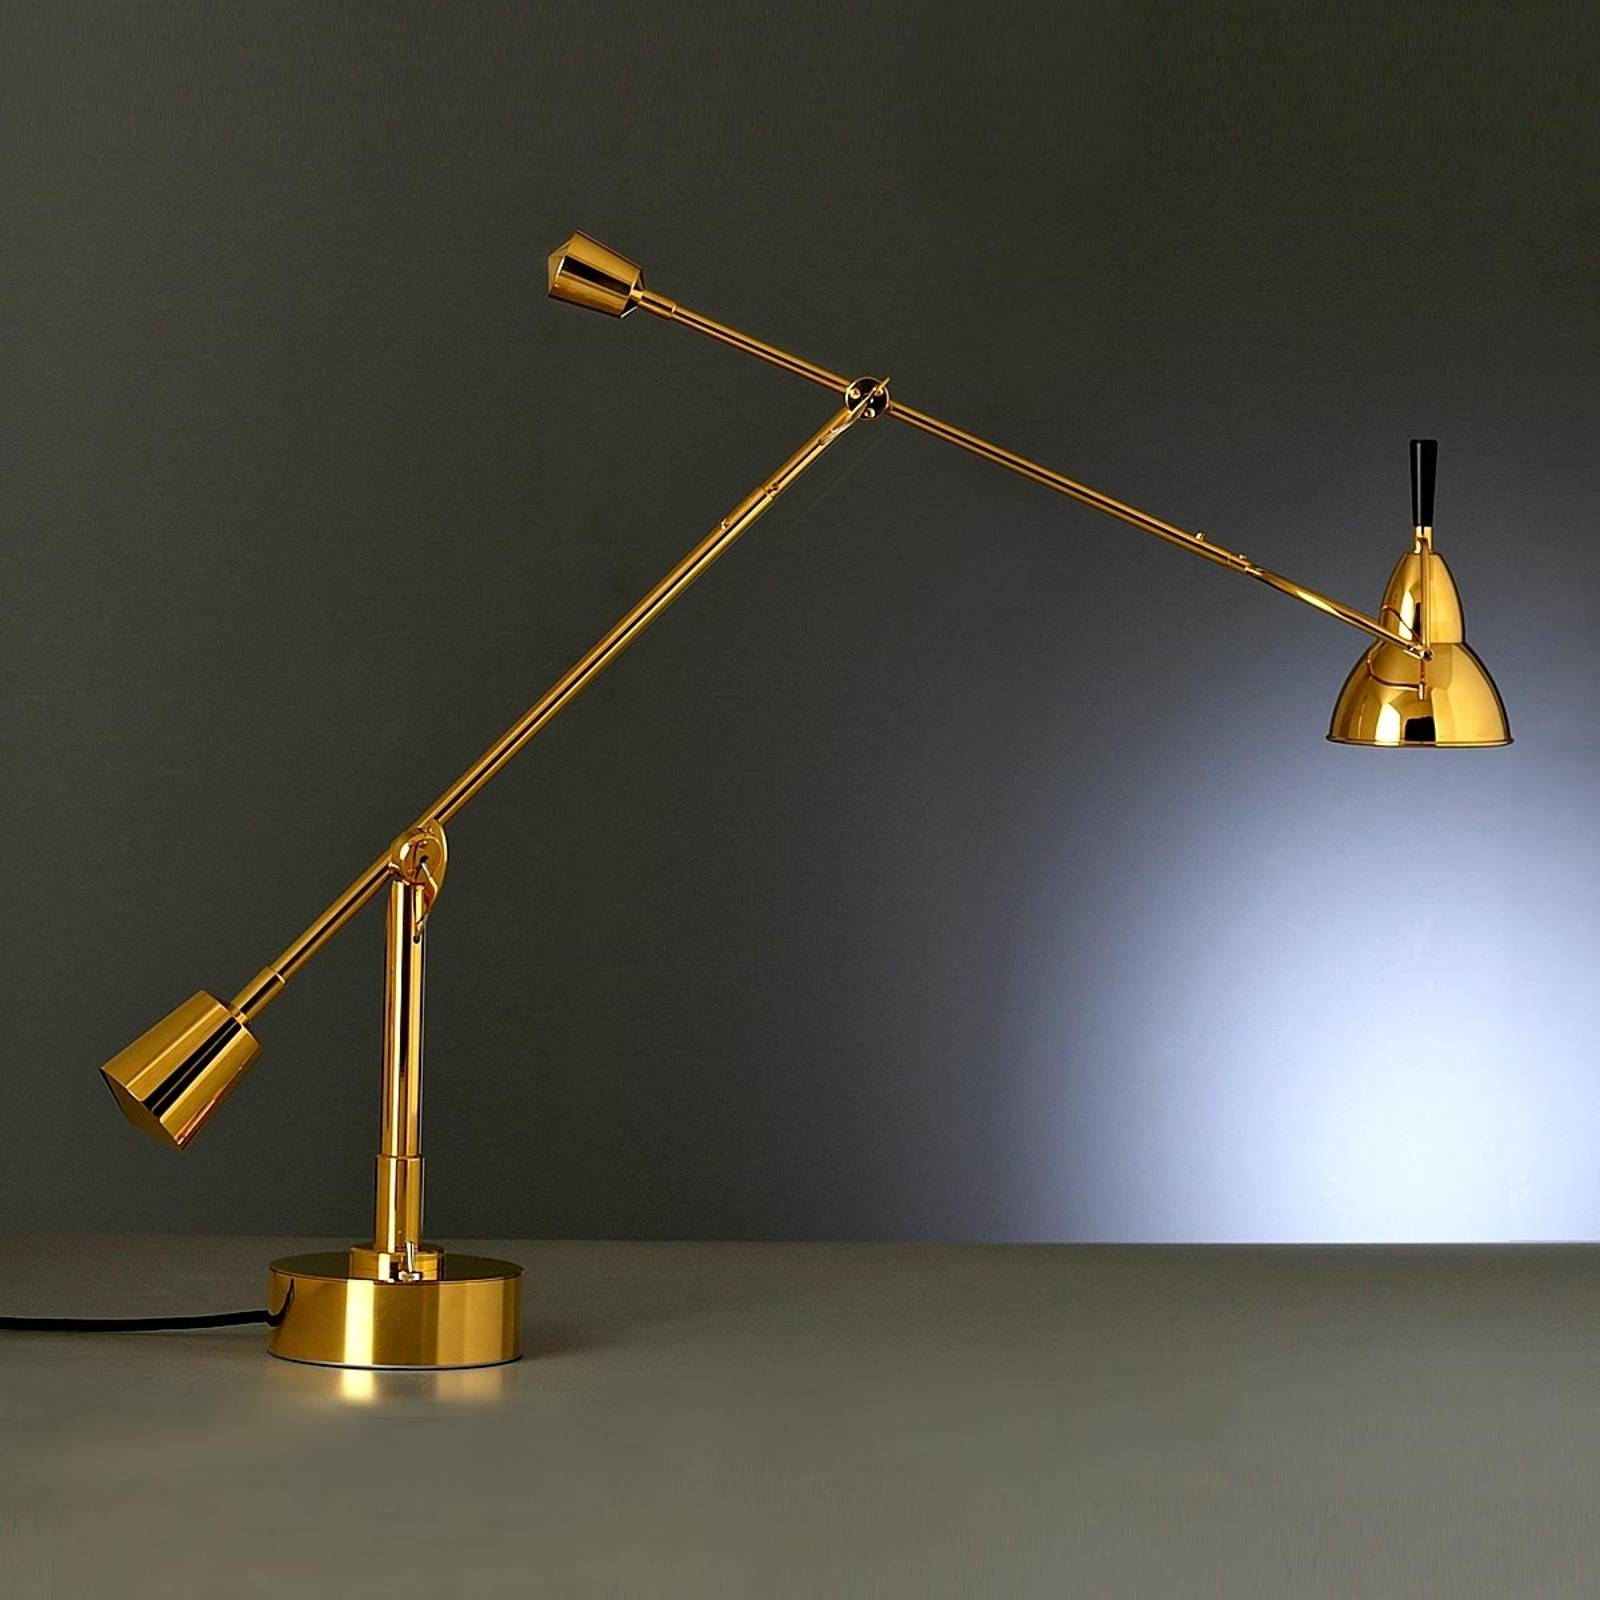 Tecnolumen Buquet table lamp, 24 carat gold-plated from Tecnolumen